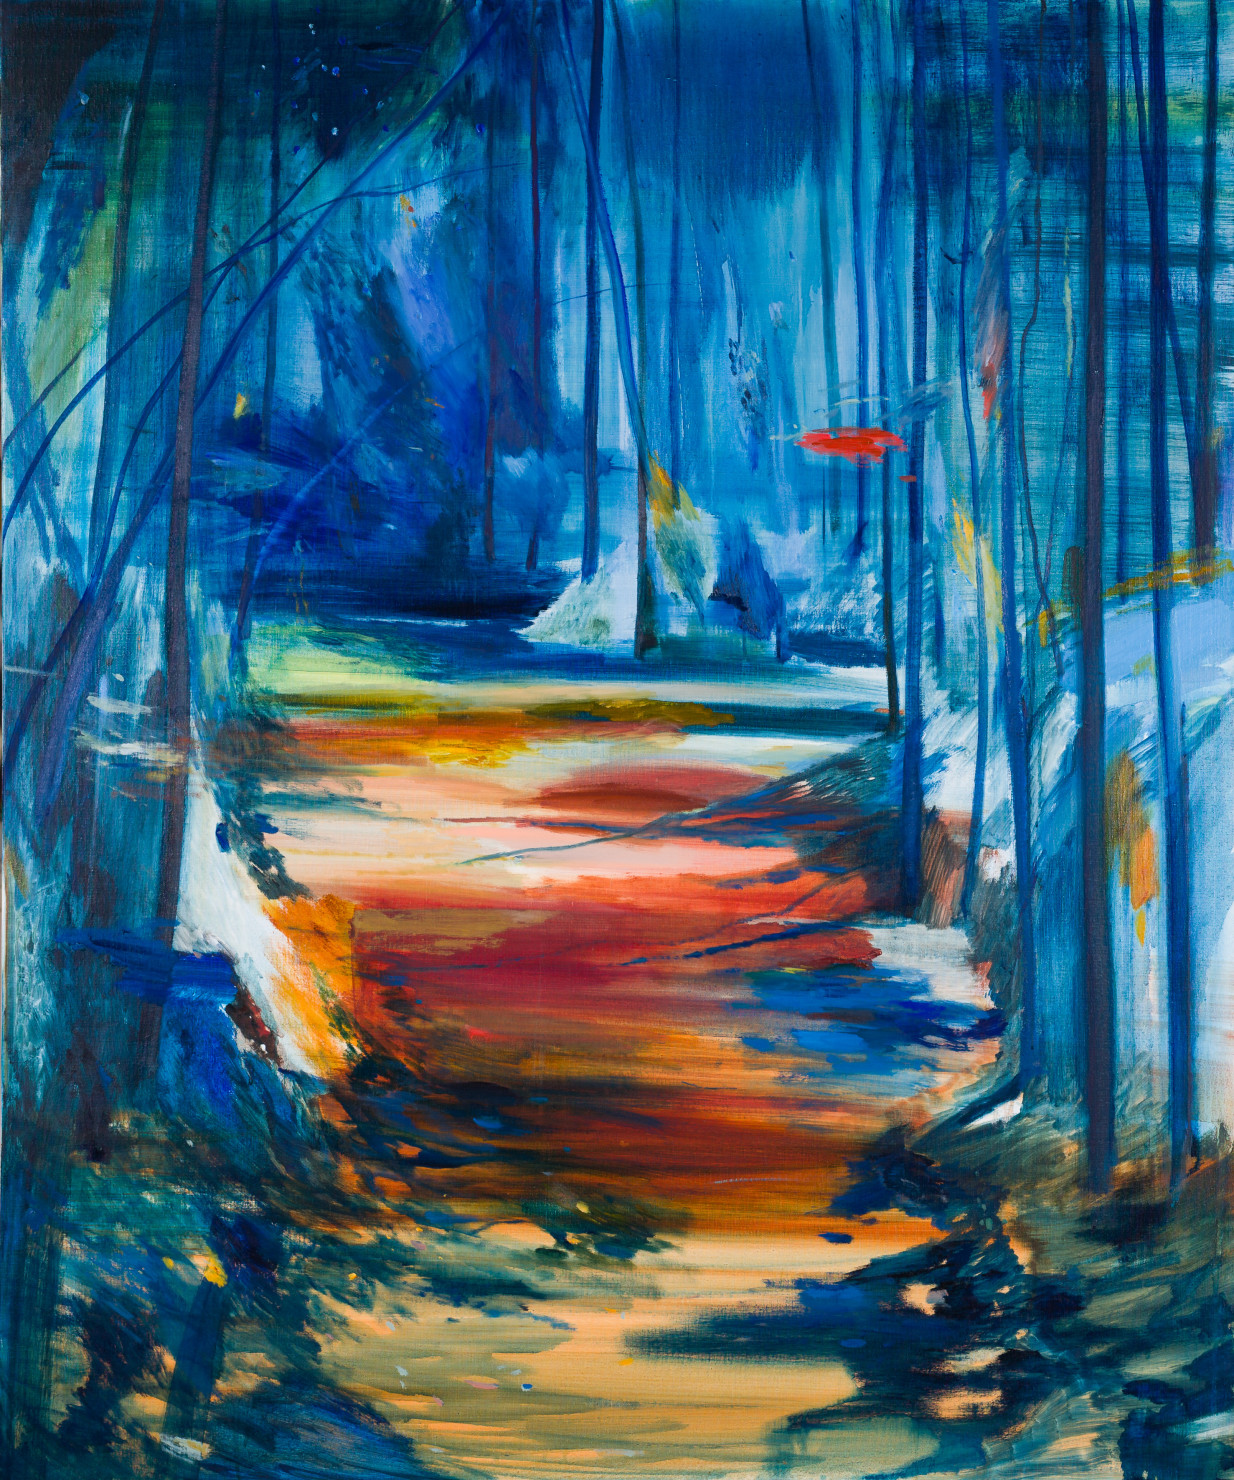 Calum McClure, Red Path, Blue Trees, 2019